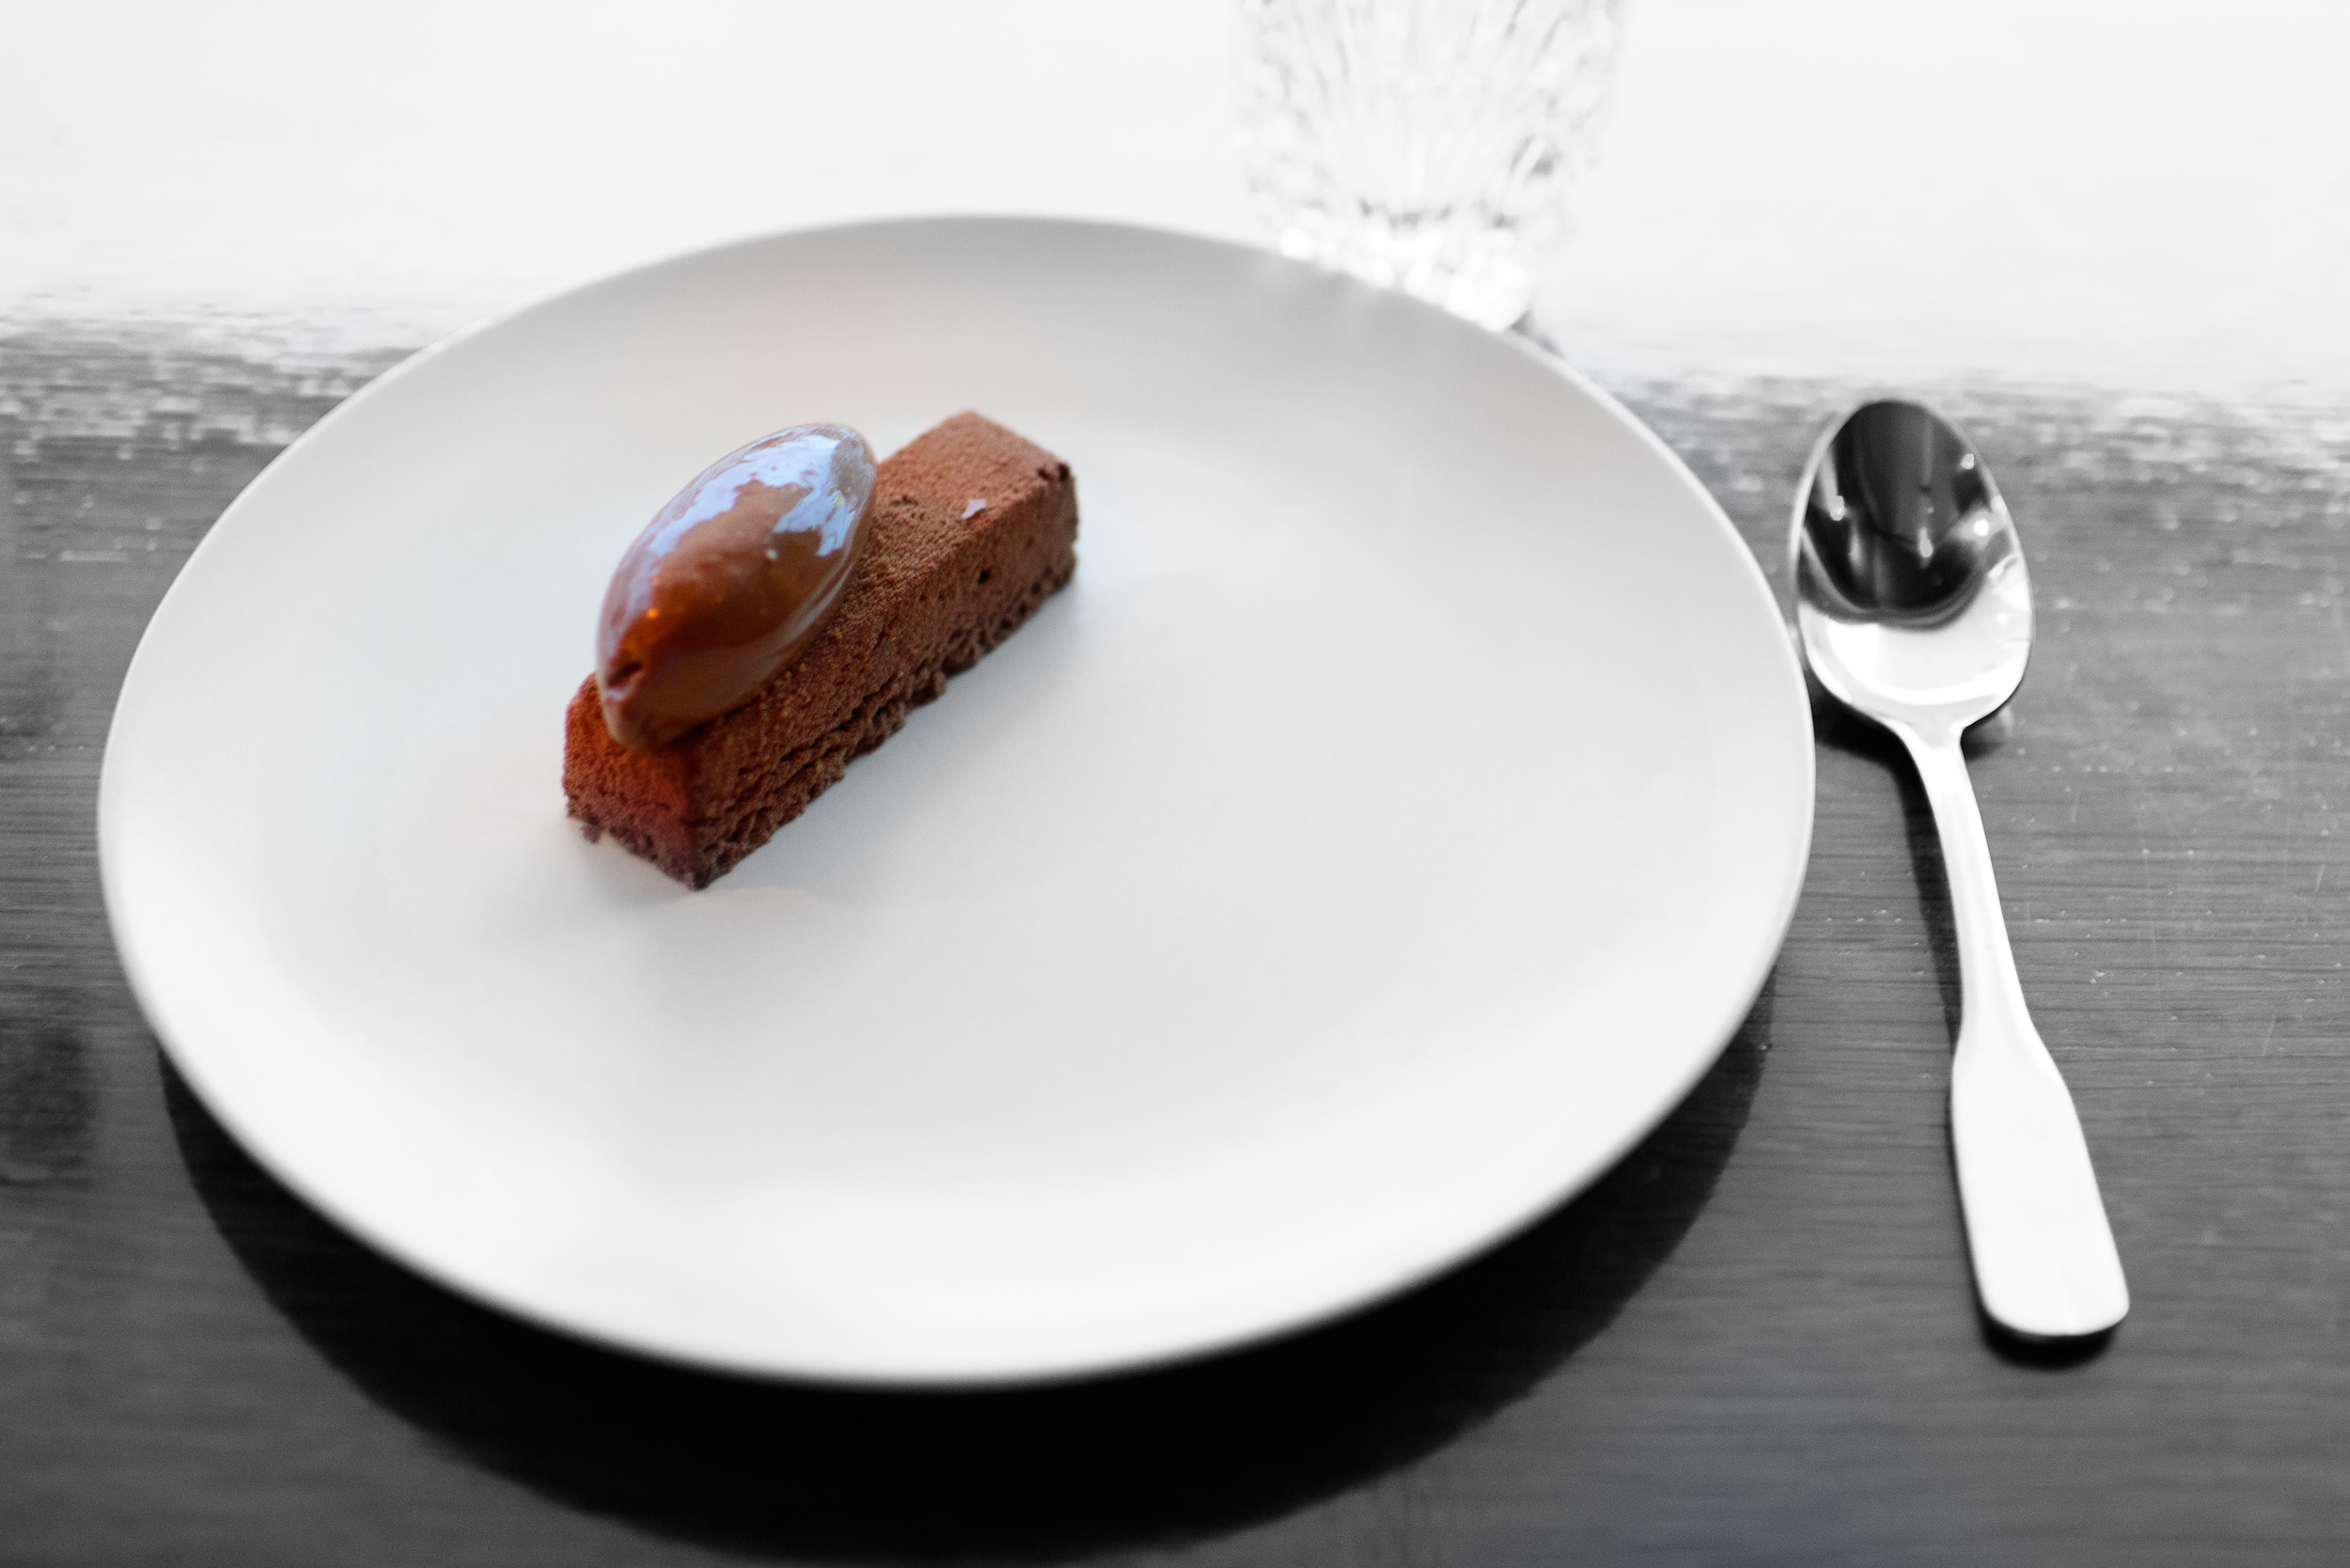 11th Course: Chocolate mousse, chocolate sorbet